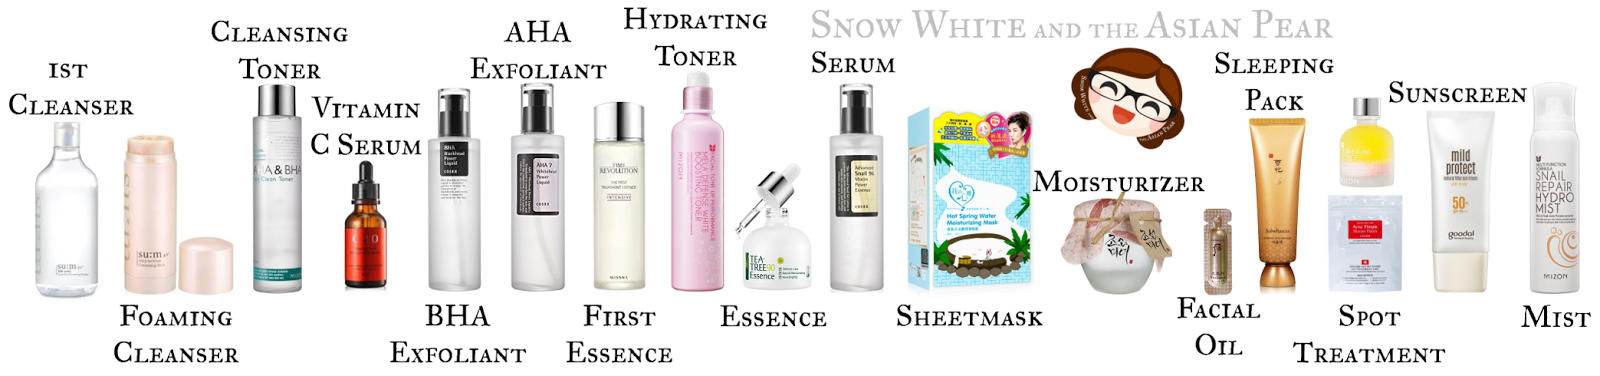 Putting Your Products In Order Including Ph Dependent Acids Skin Care Routine Order Skin Care Routine Korean Skincare Routine